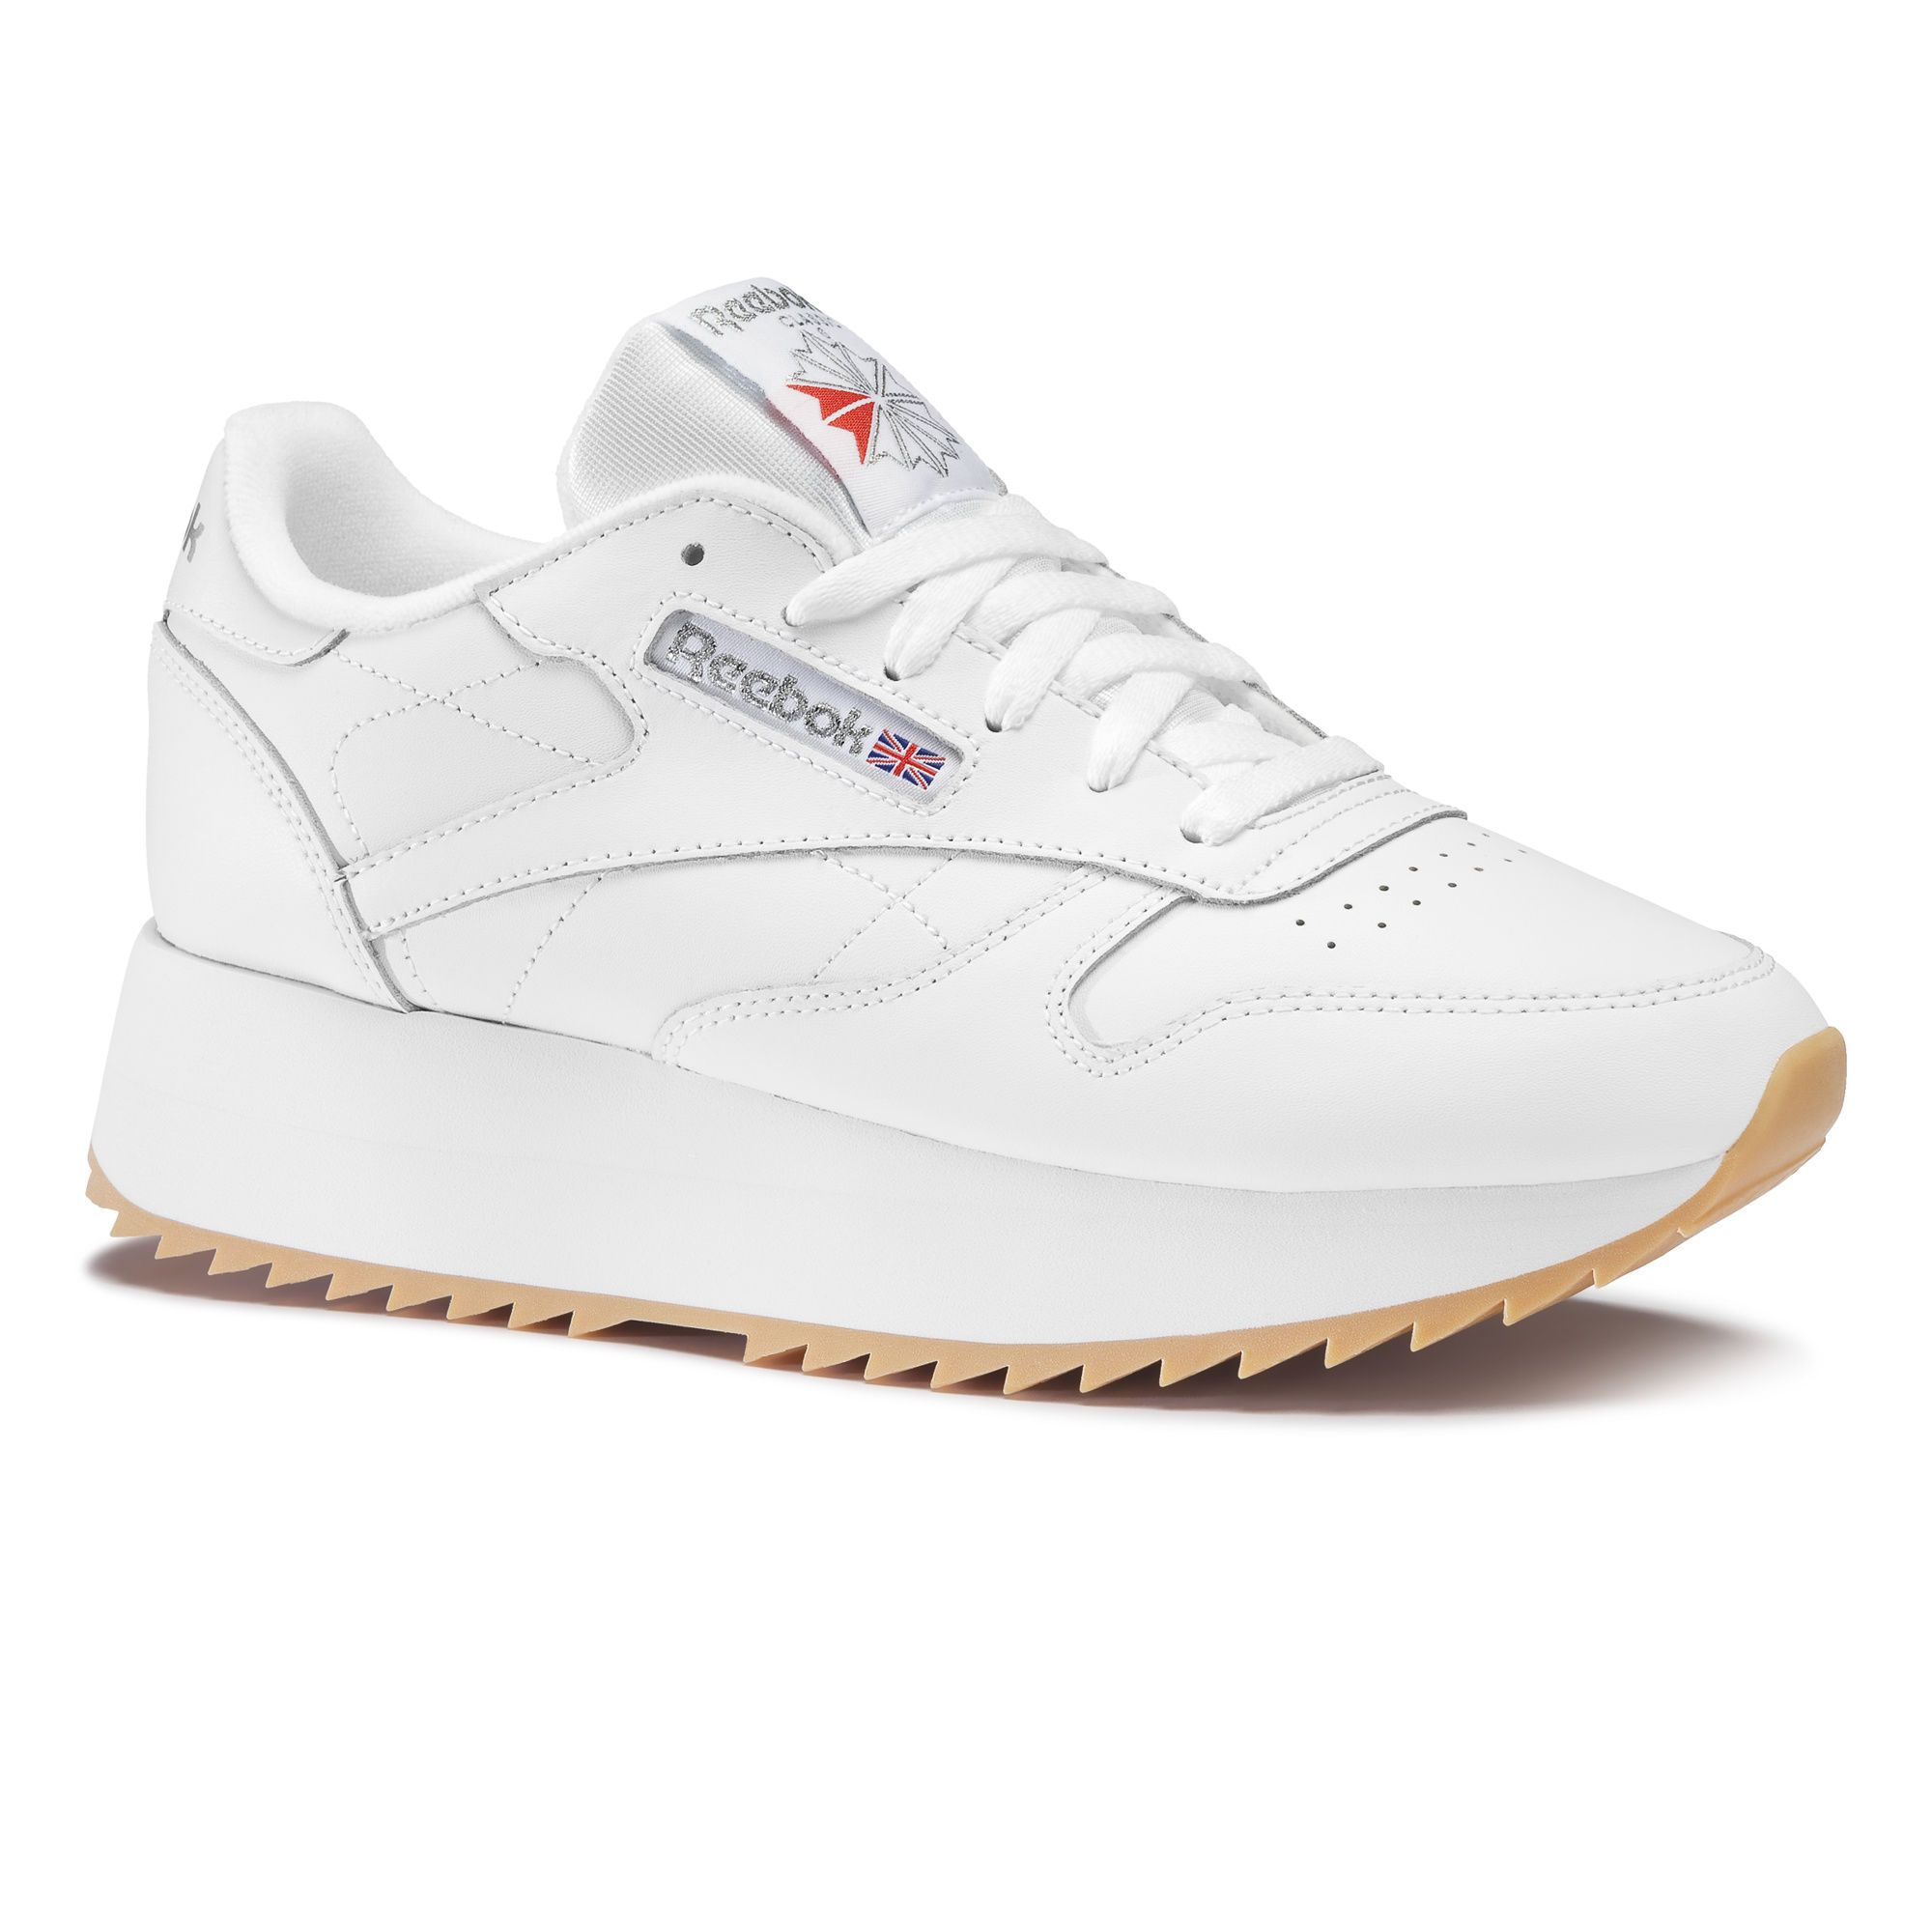 Reebok Classic Leather Double Blanc Reebok Frankrig  Reebok France